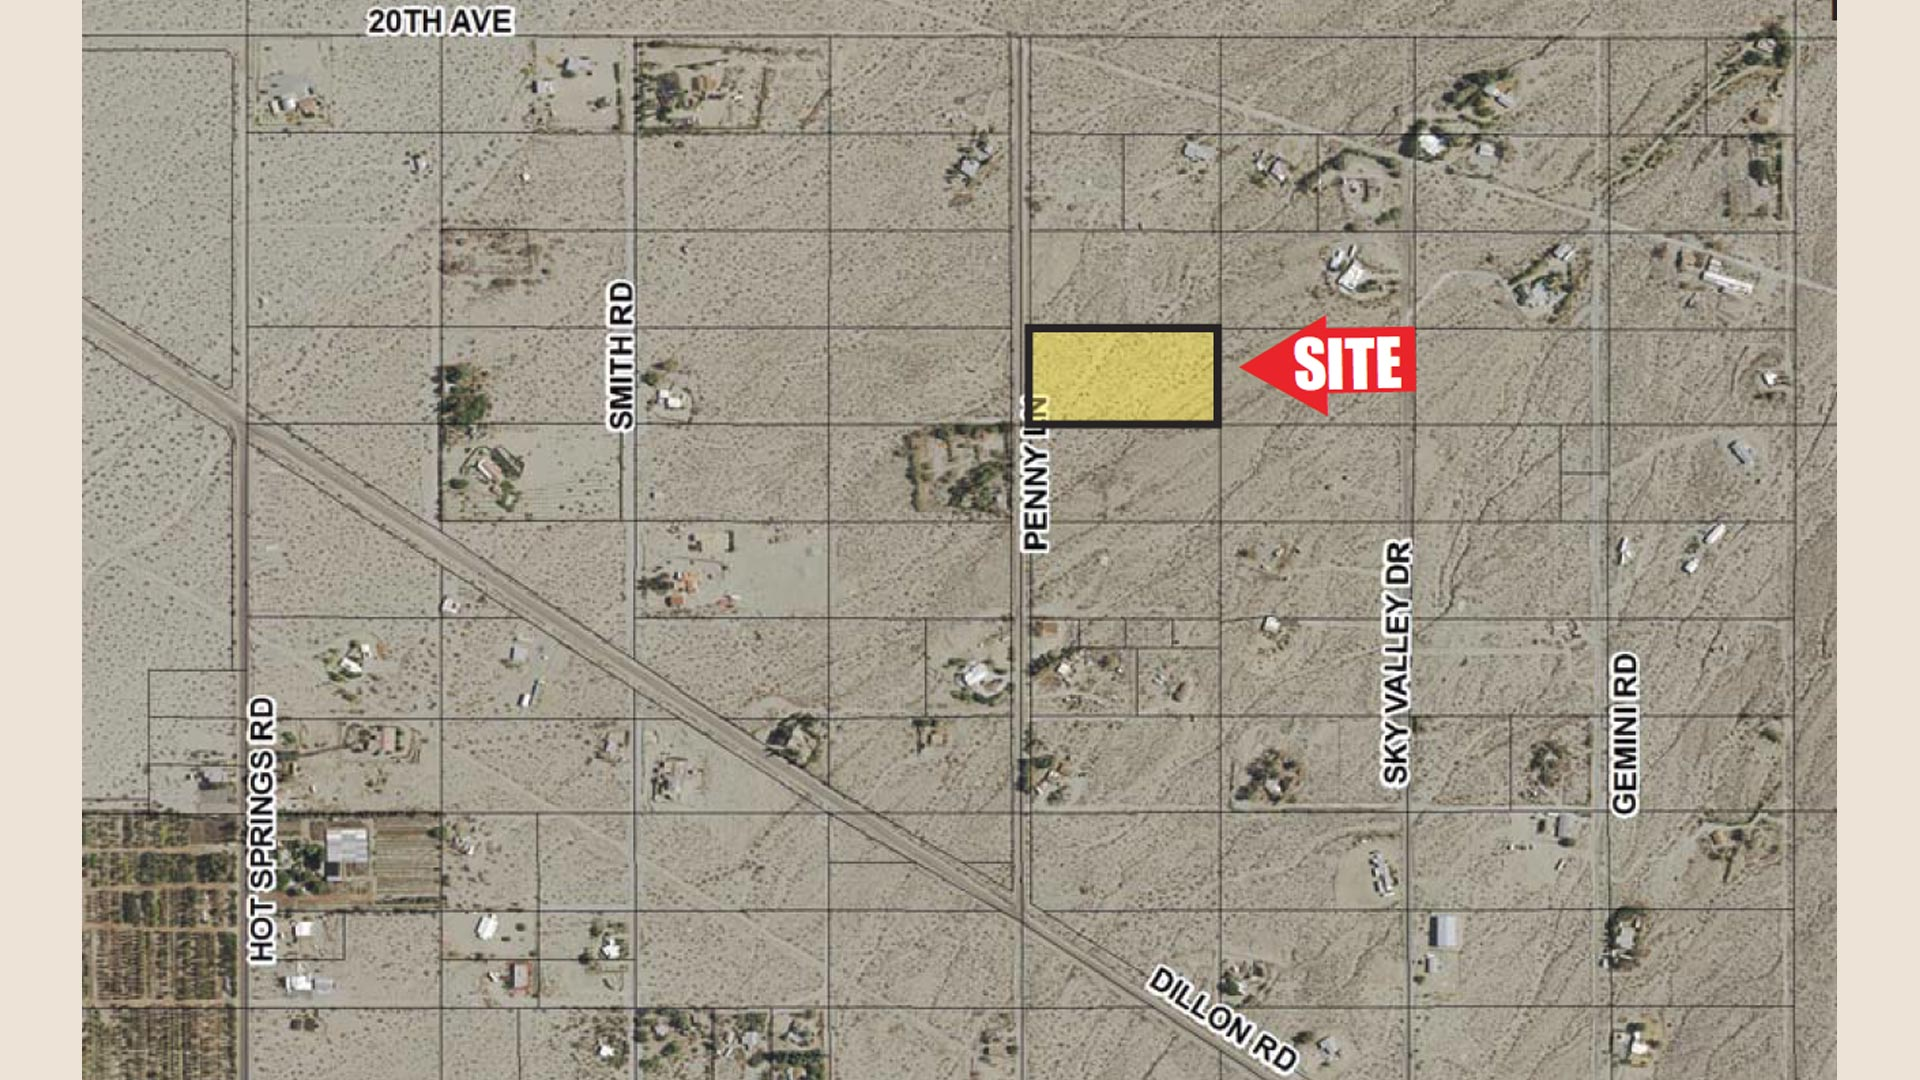 detailed property listing area map image